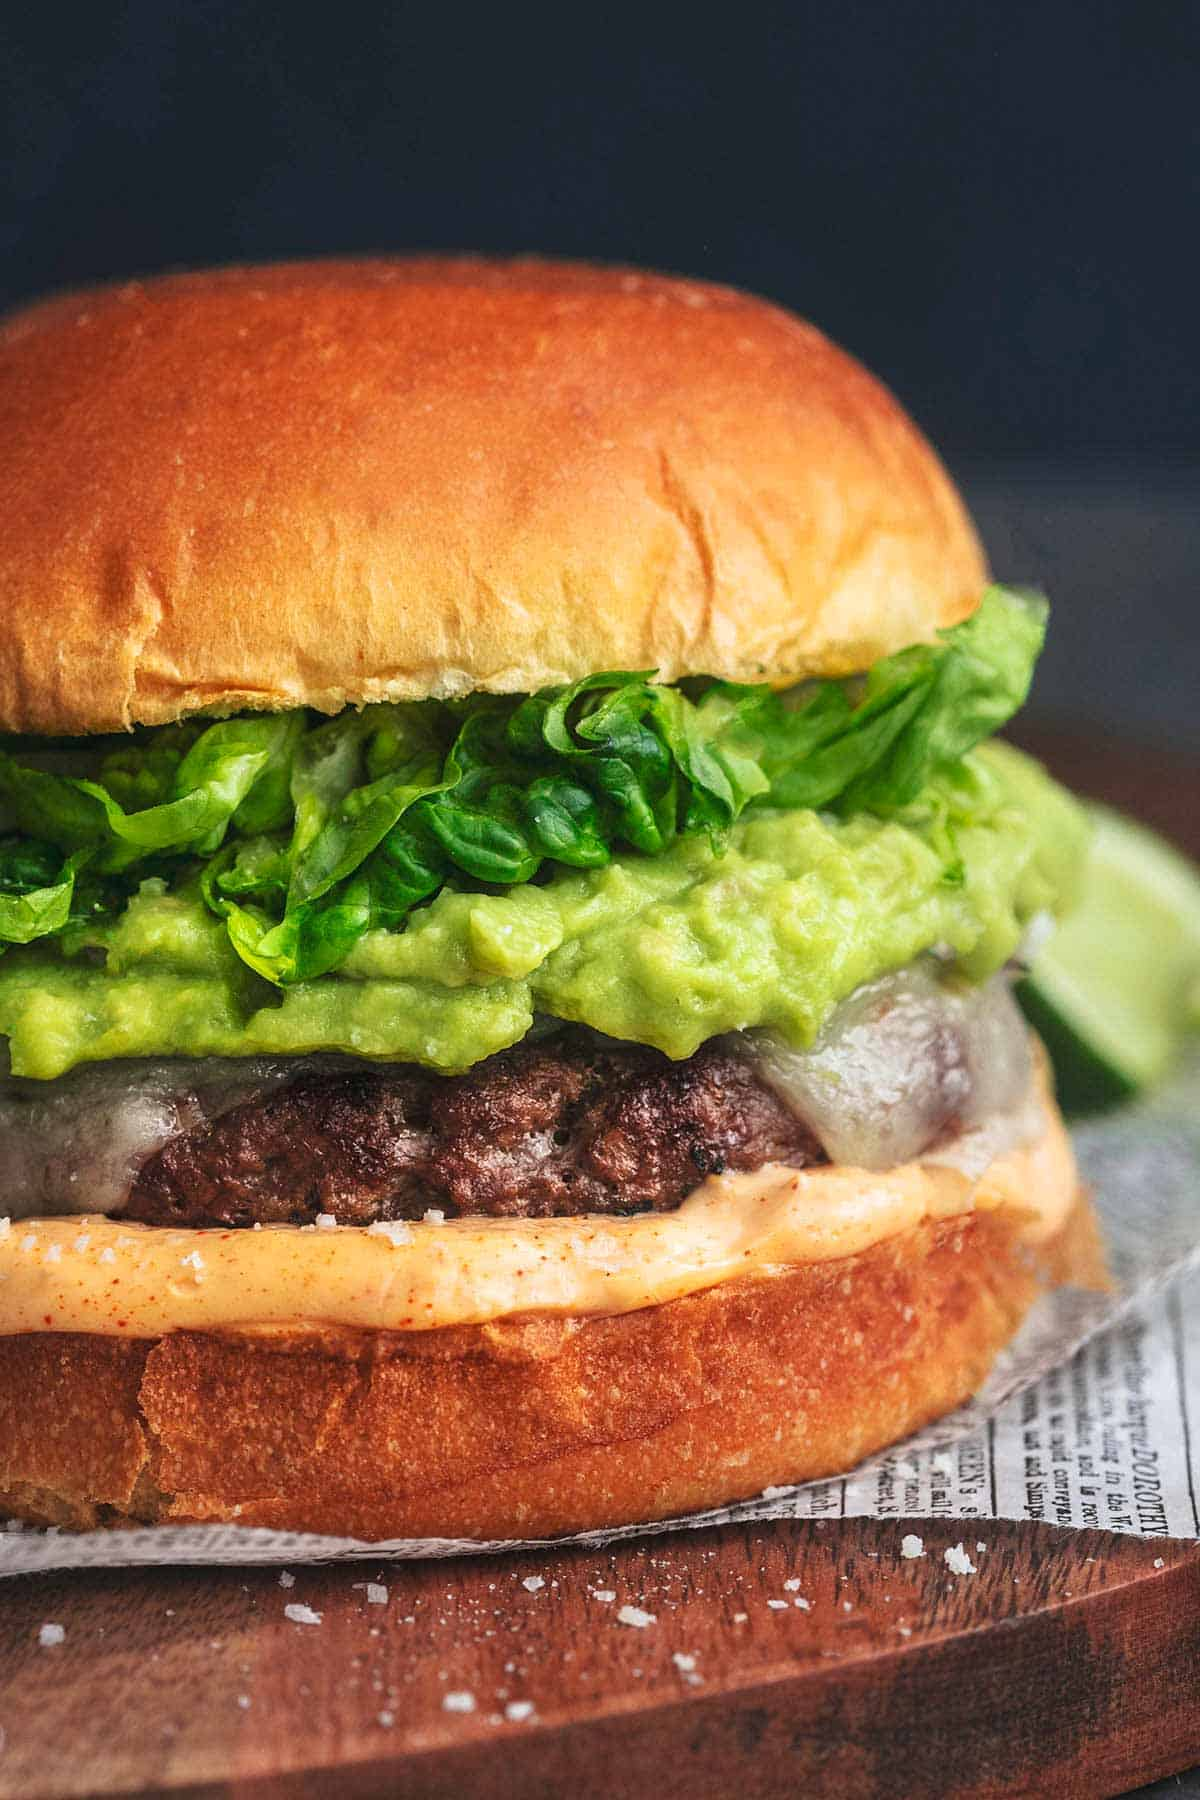 up close detail photo of burger with cheese, mayo, guacamole, and lettuce